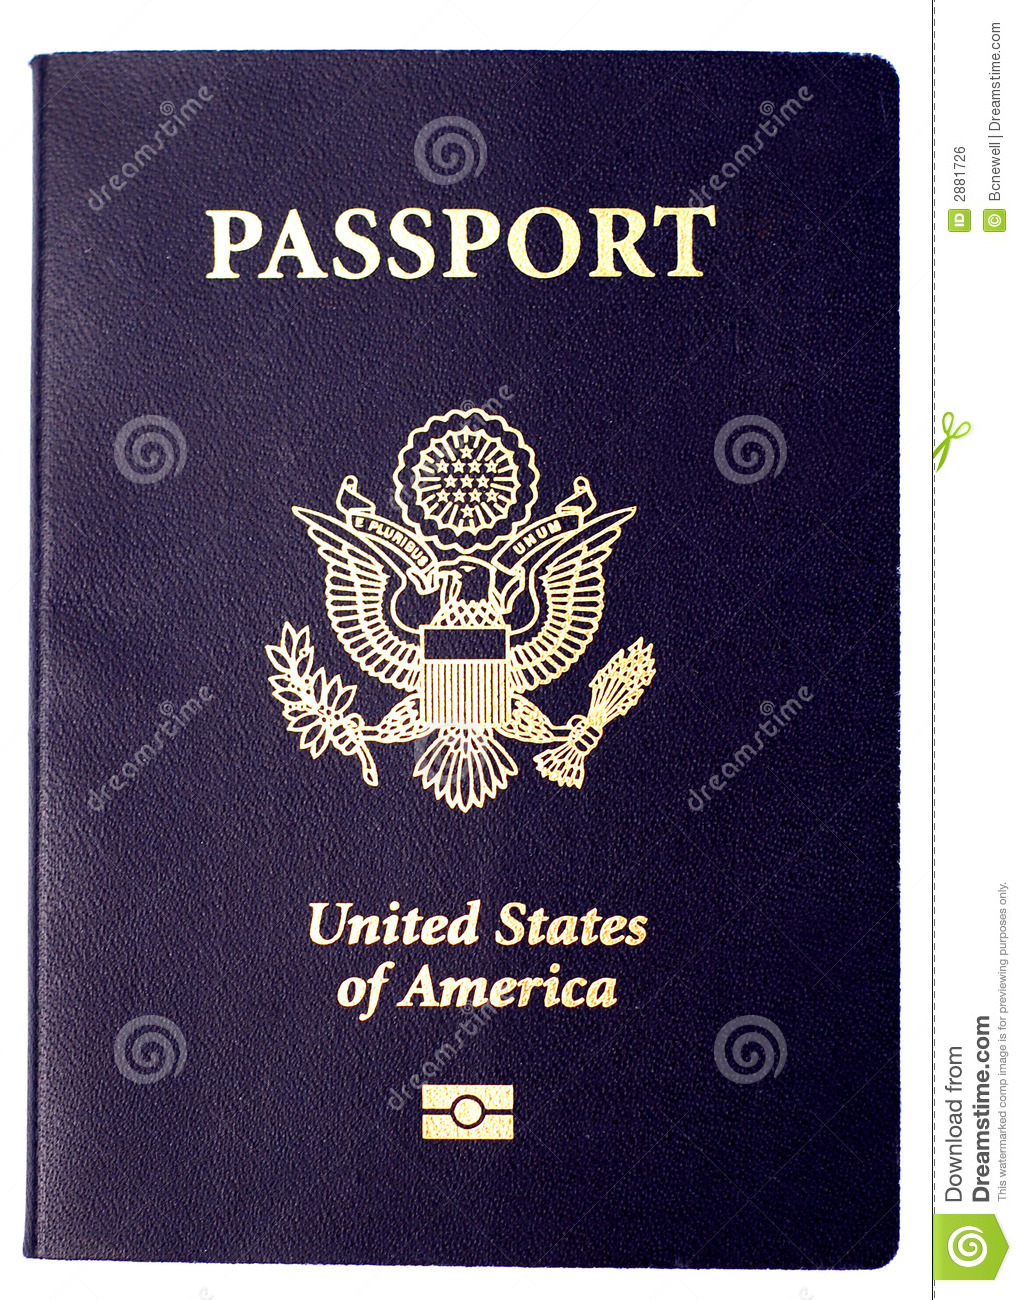 United states passport clipart svg freeuse download US Passport Royalty Free Stock Image - Image: 2881726 svg freeuse download